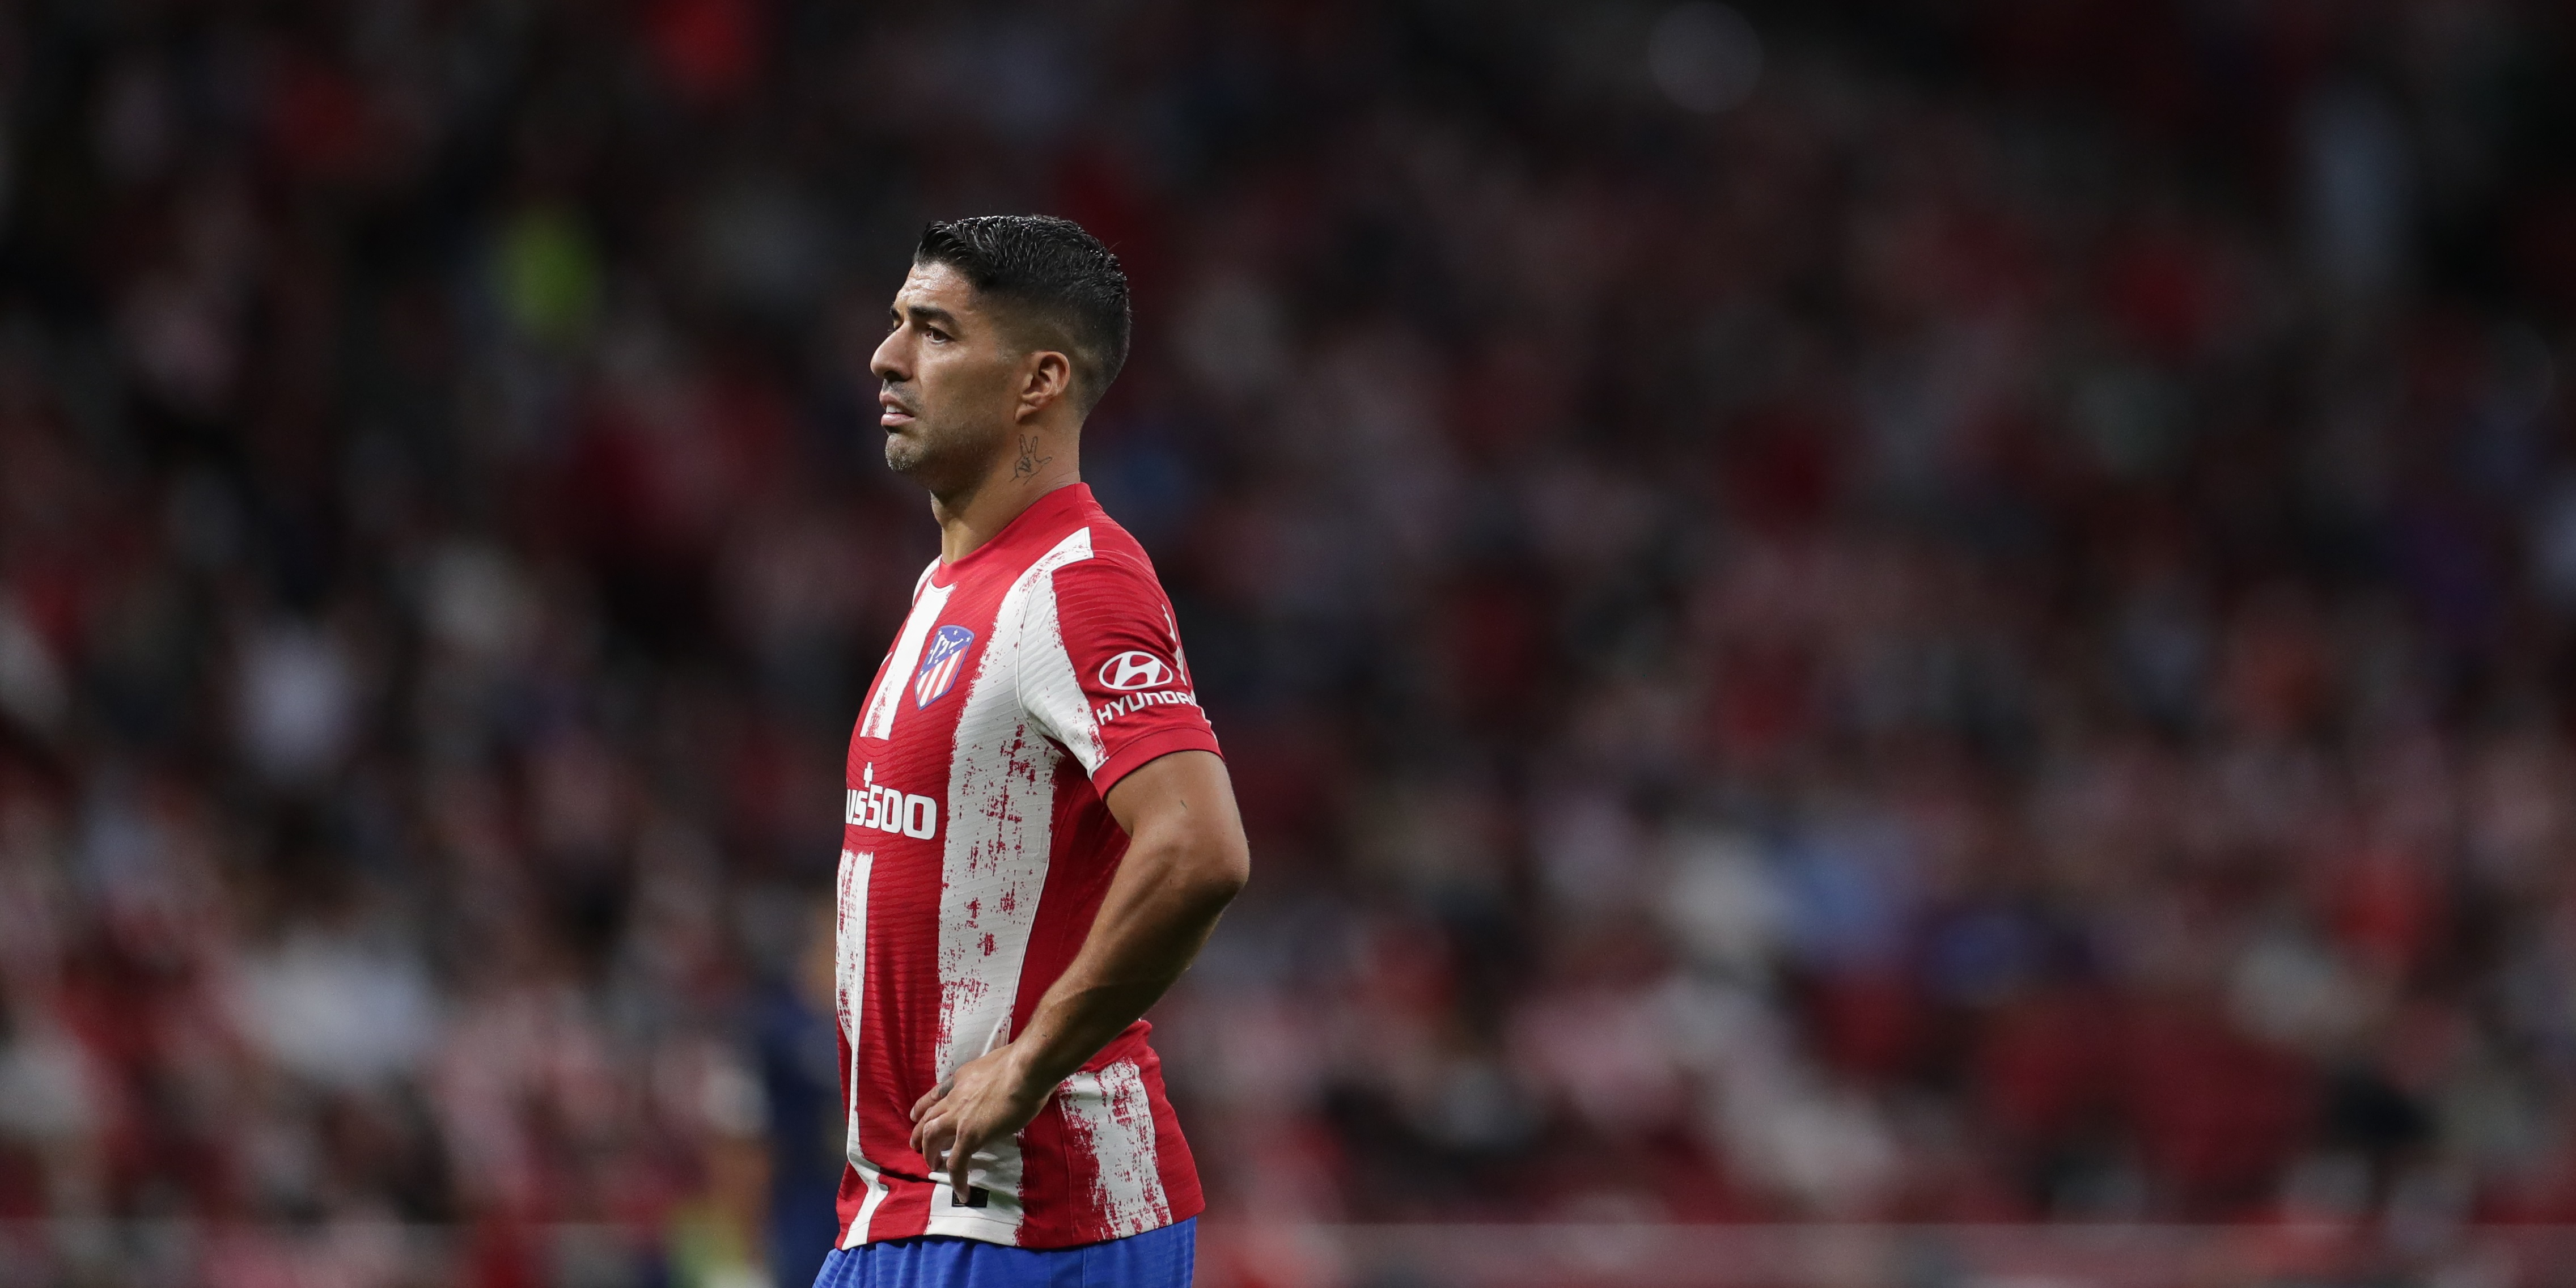 Liverpool fans will be furious once they hear how Spain reacted to South American stars returning late from international duty